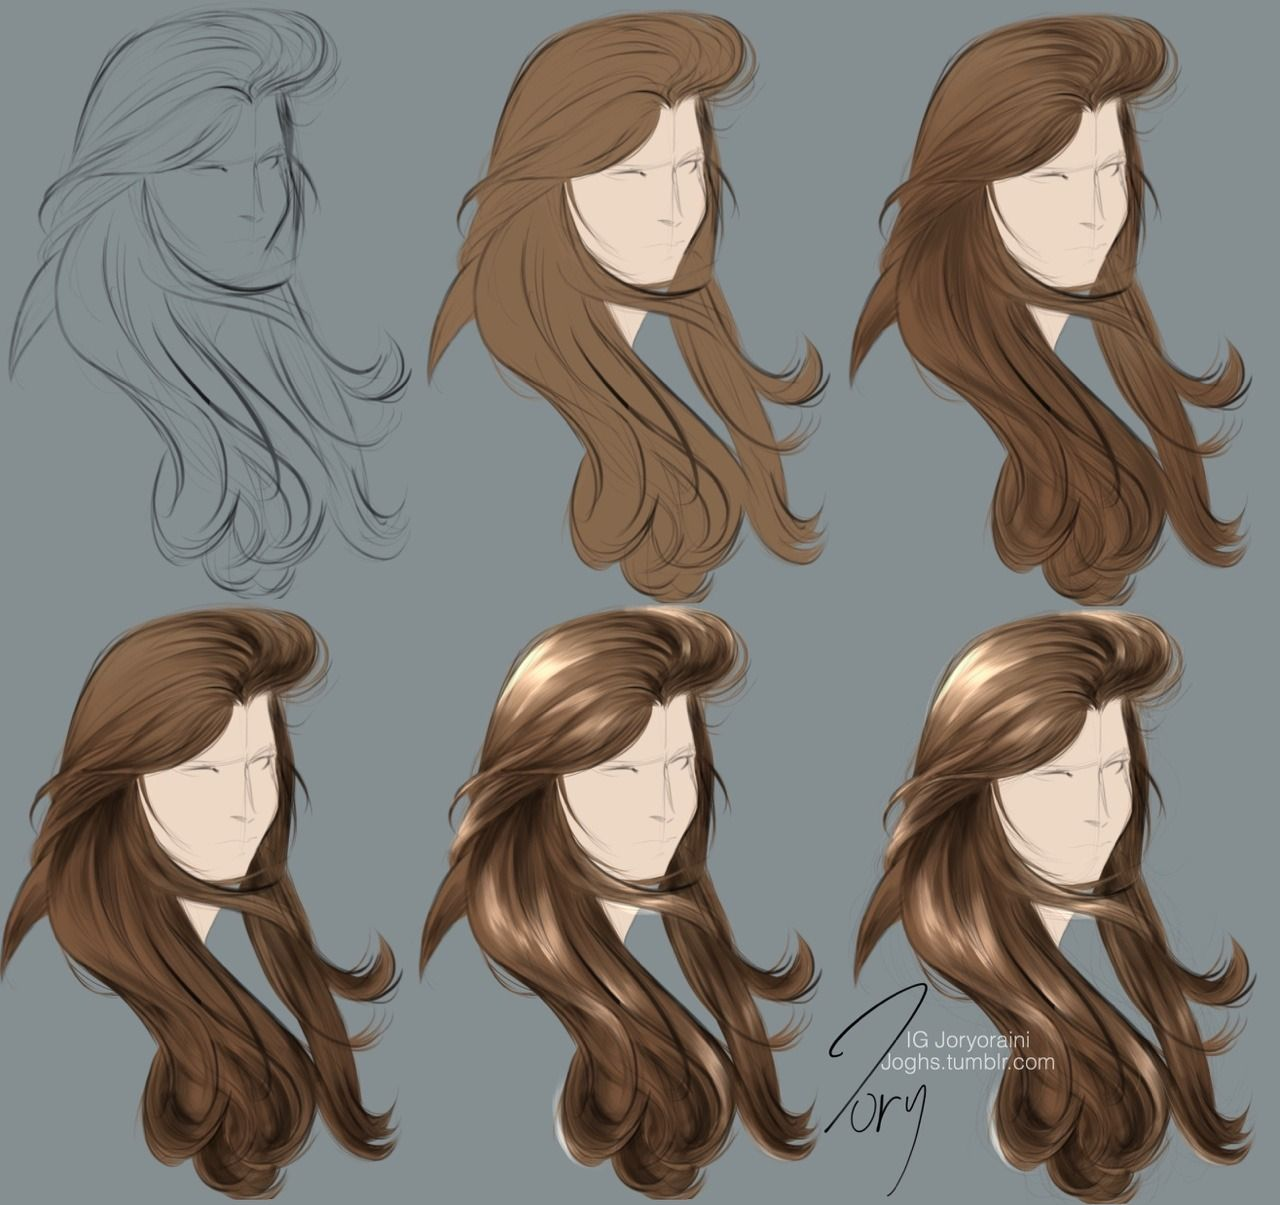 How To Art Manga Hair Digital Art Tutorial Drawing Hair Tutorial